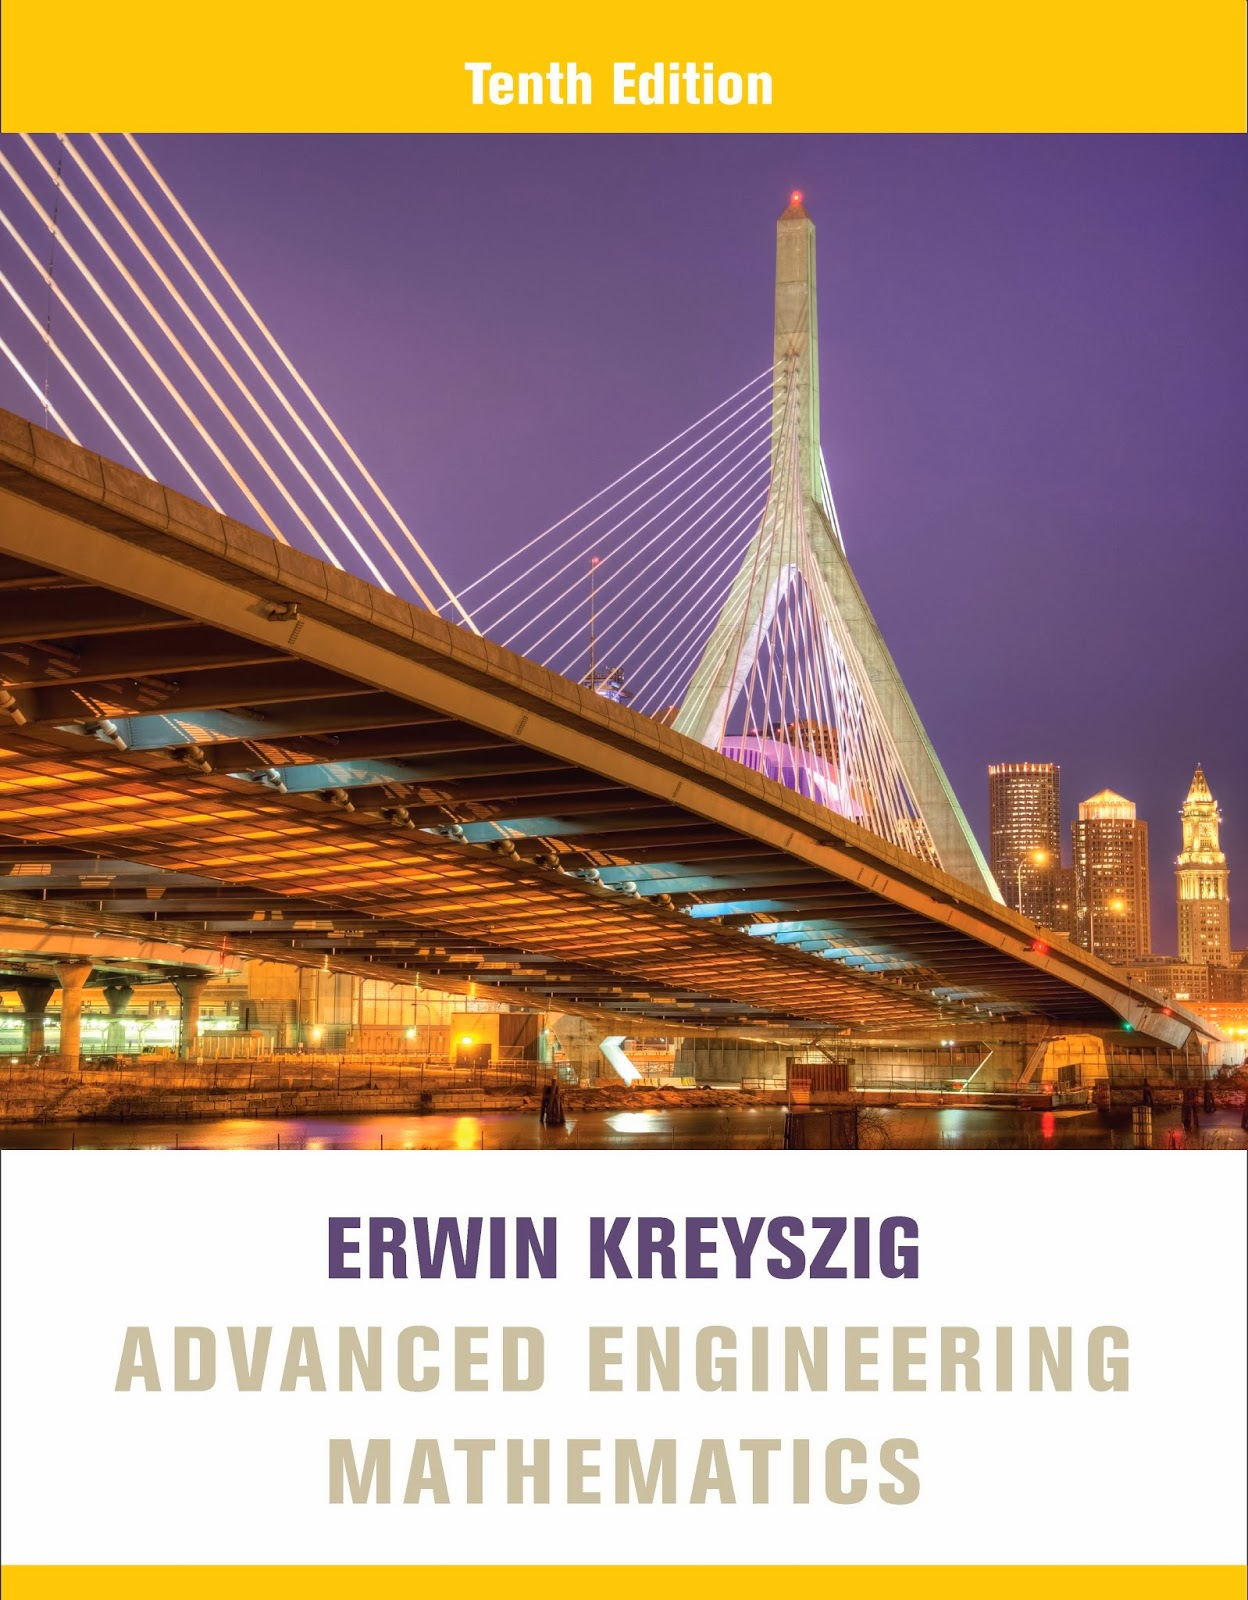 Book: Advanced Engineering Mathematics 10th Edition by Erwin Kreyszig